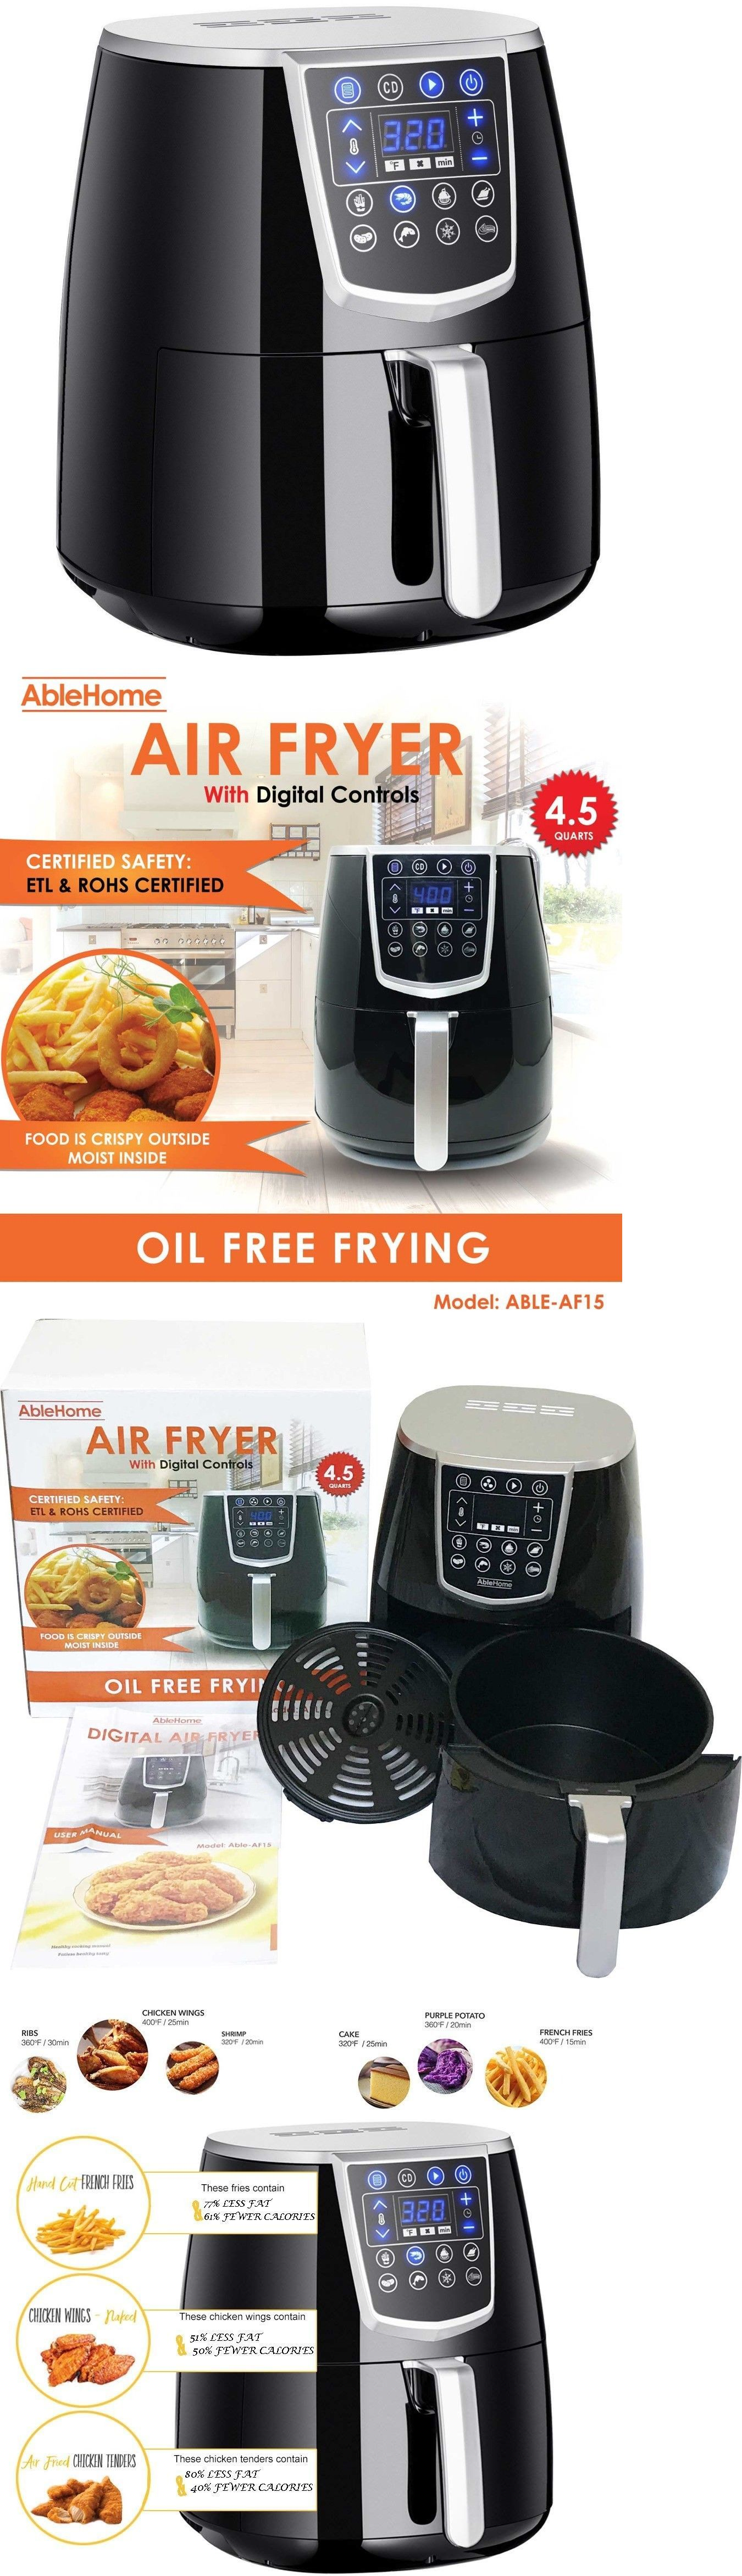 Infrared And Convection Ovens 150139 Electric Air Fryer 4 5 Qt